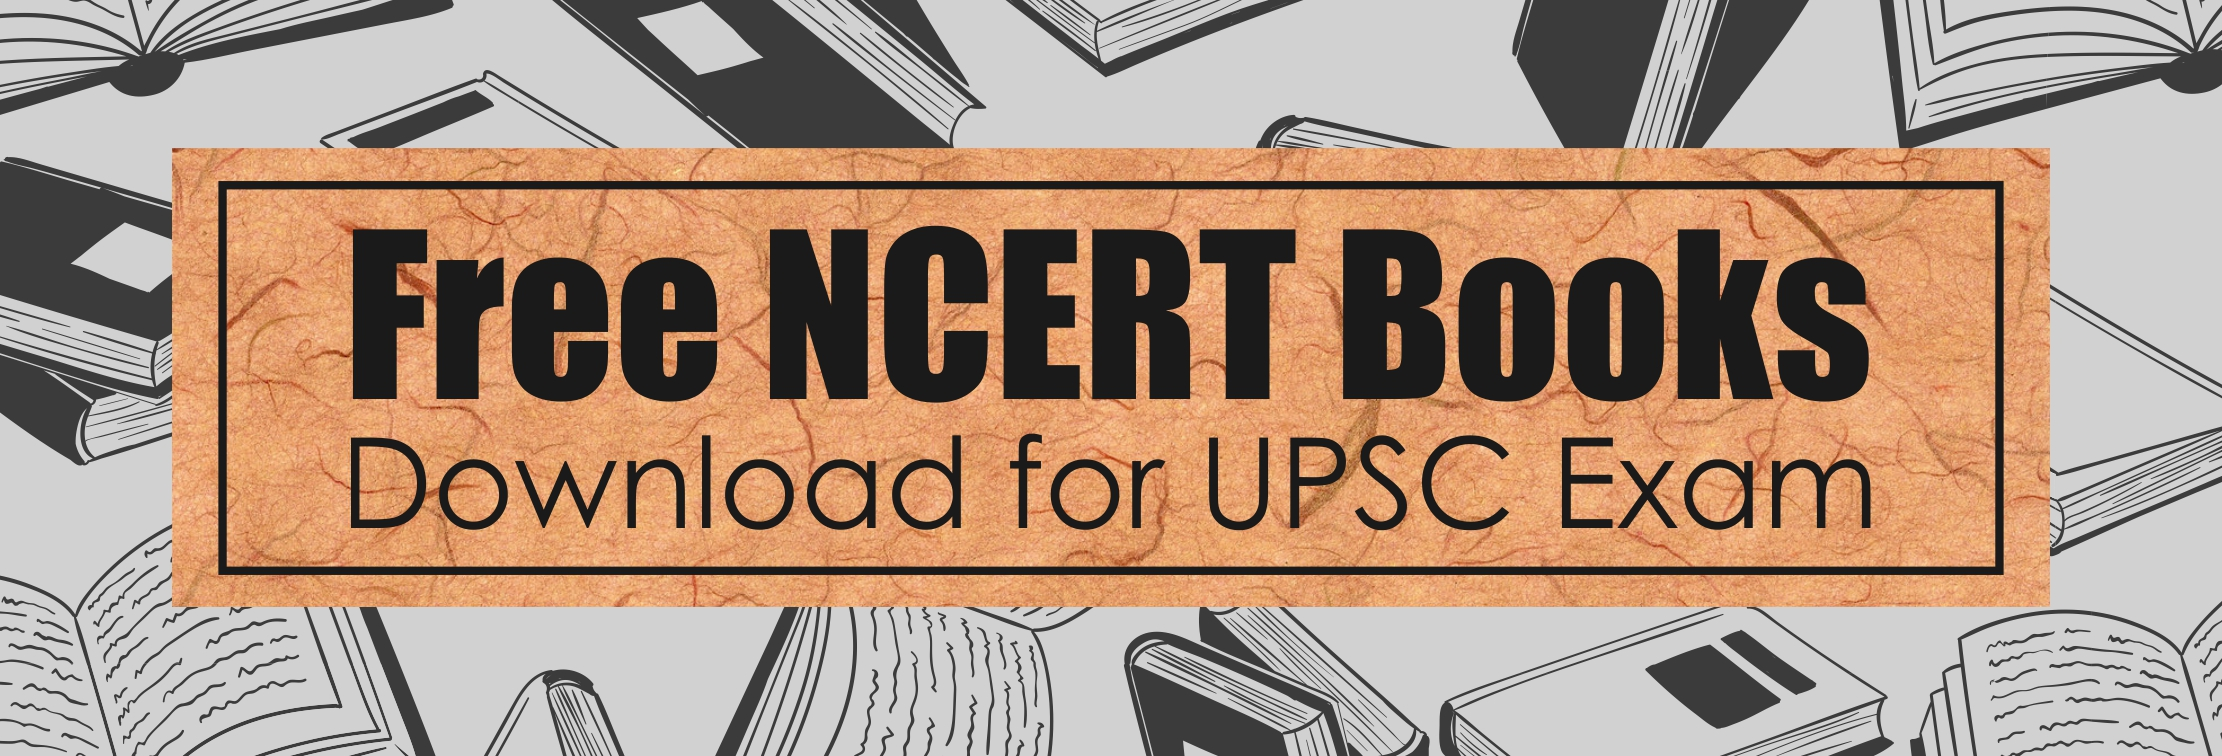 NCERT Books - Download NCERT Books PDFs For UPSC